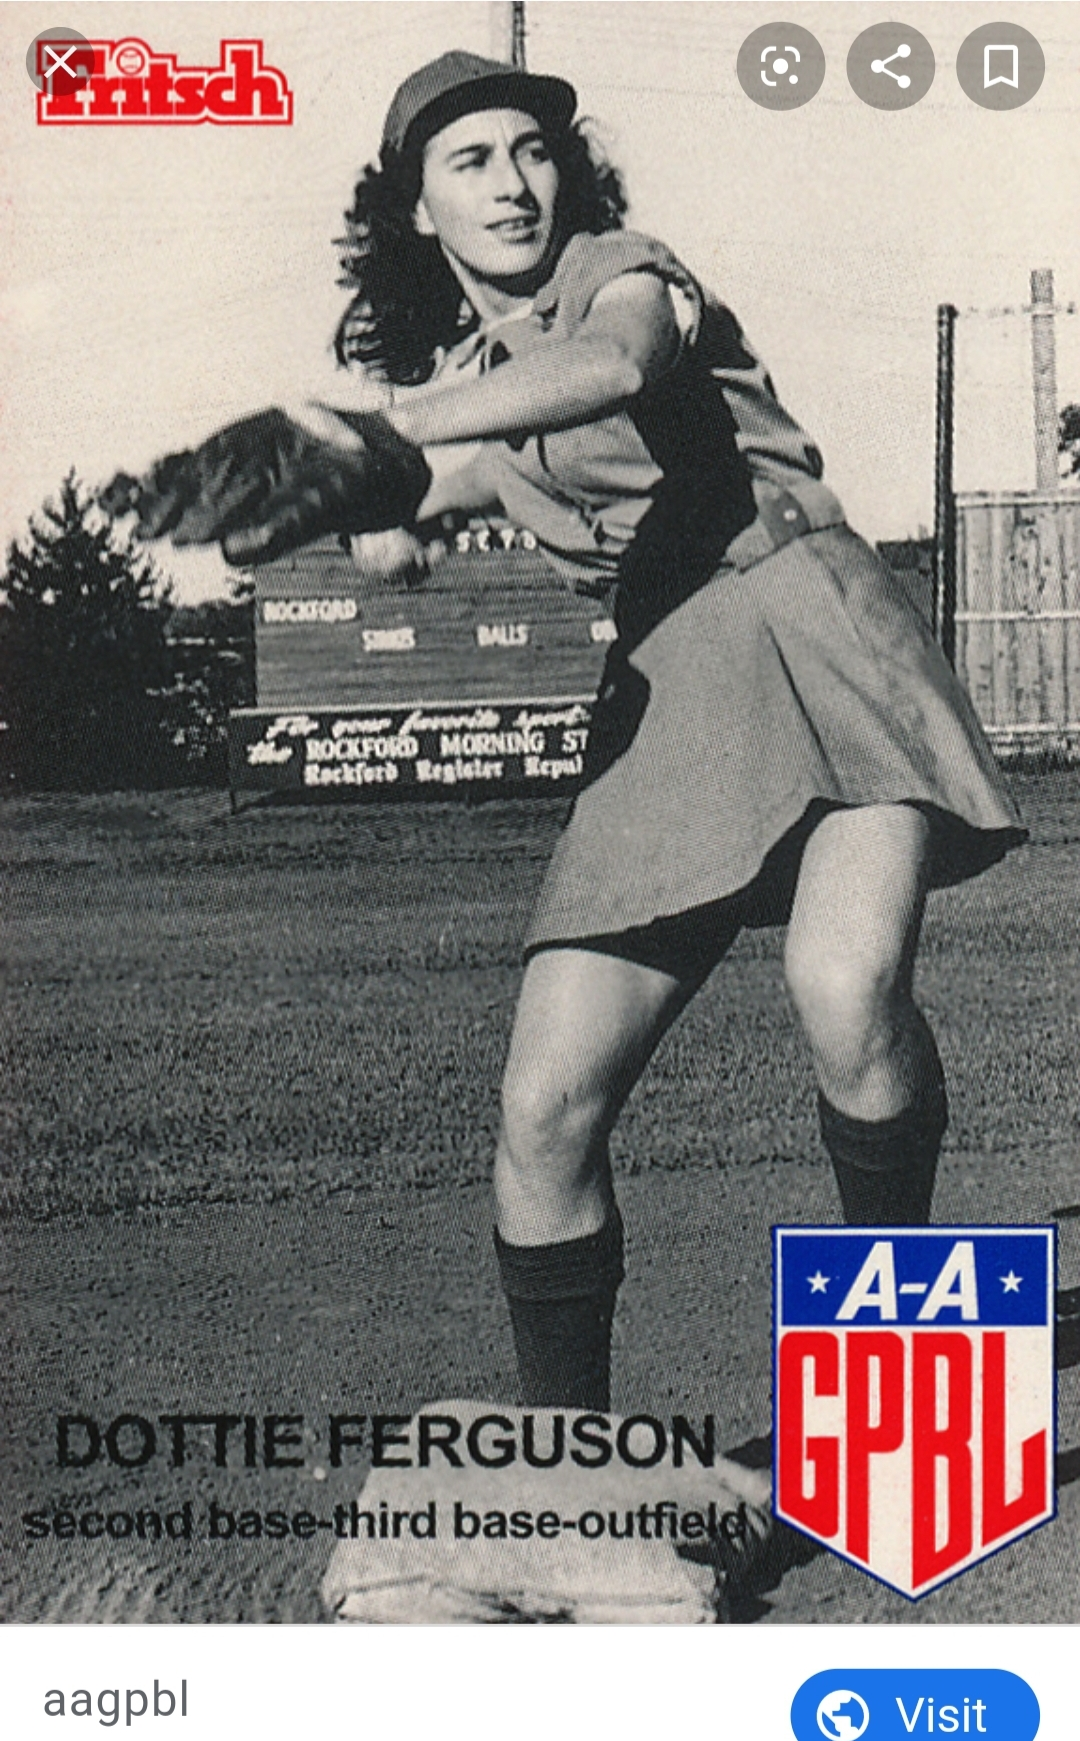 Courtesy of AAGPBL